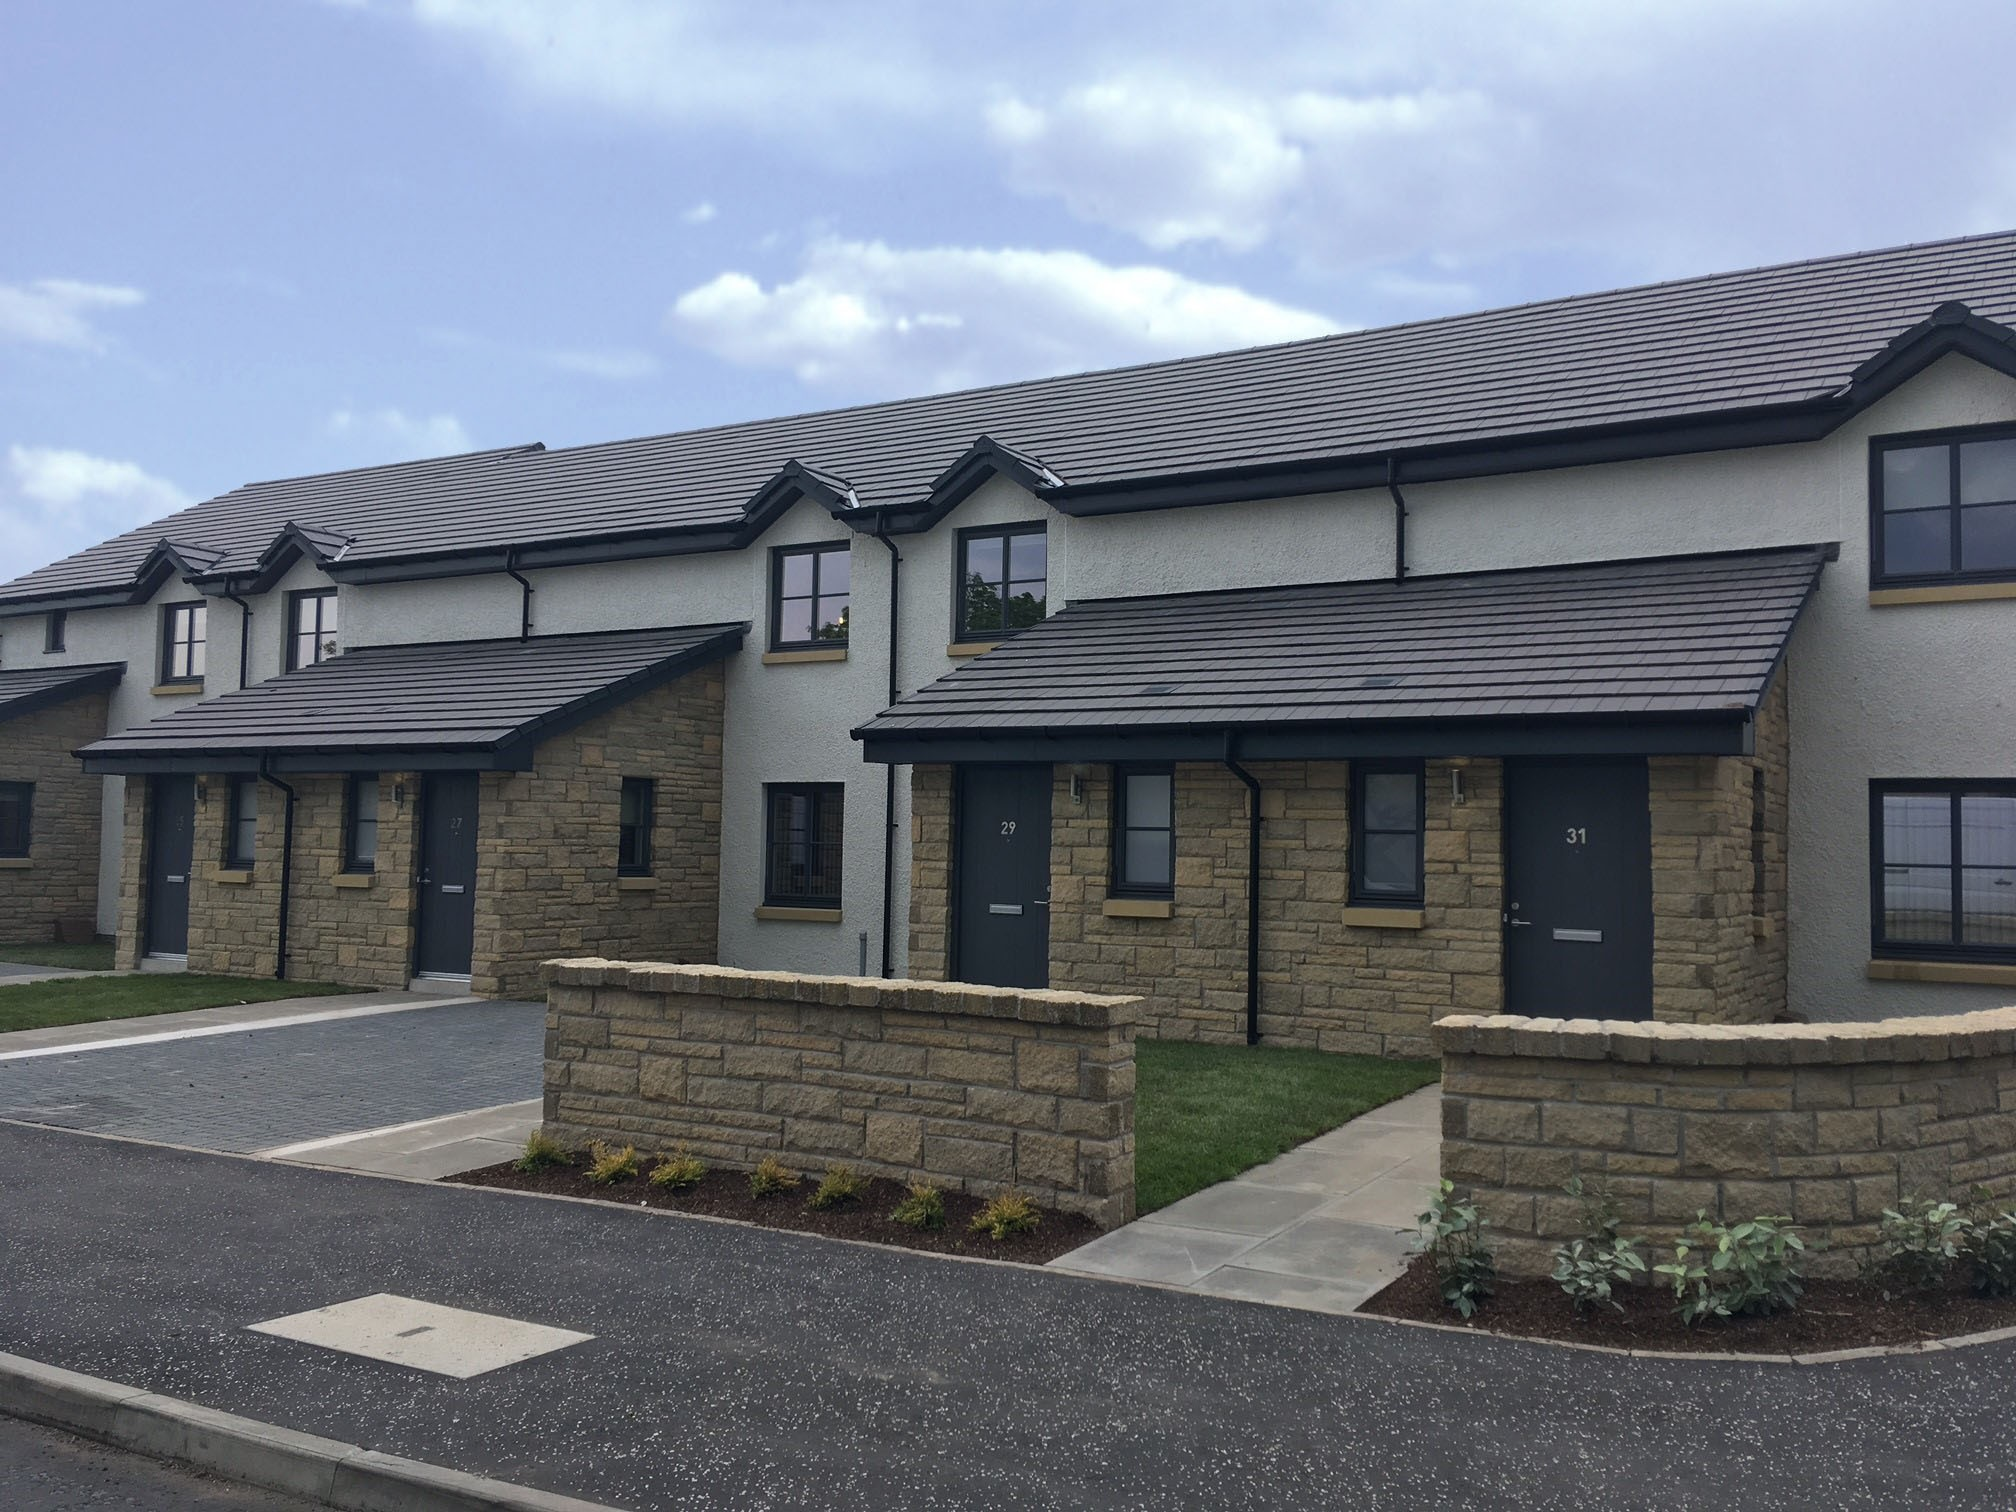 Westbank Road, Macmerry on handover day May 2017